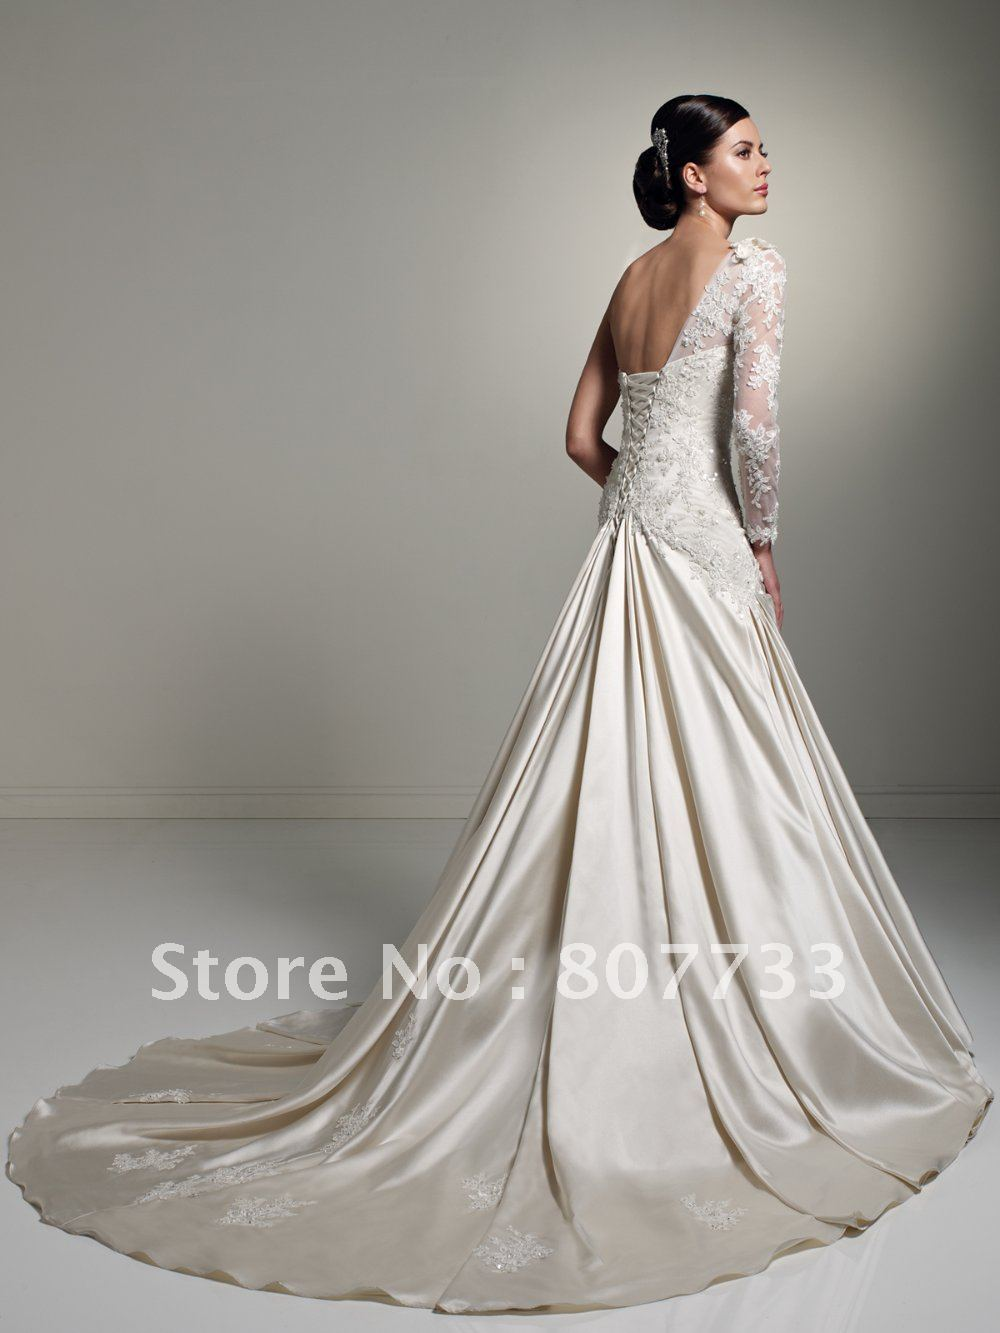 Vera wang bridesmaid dresses one shoulder 2014 2015 for Champagne colored wedding dresses